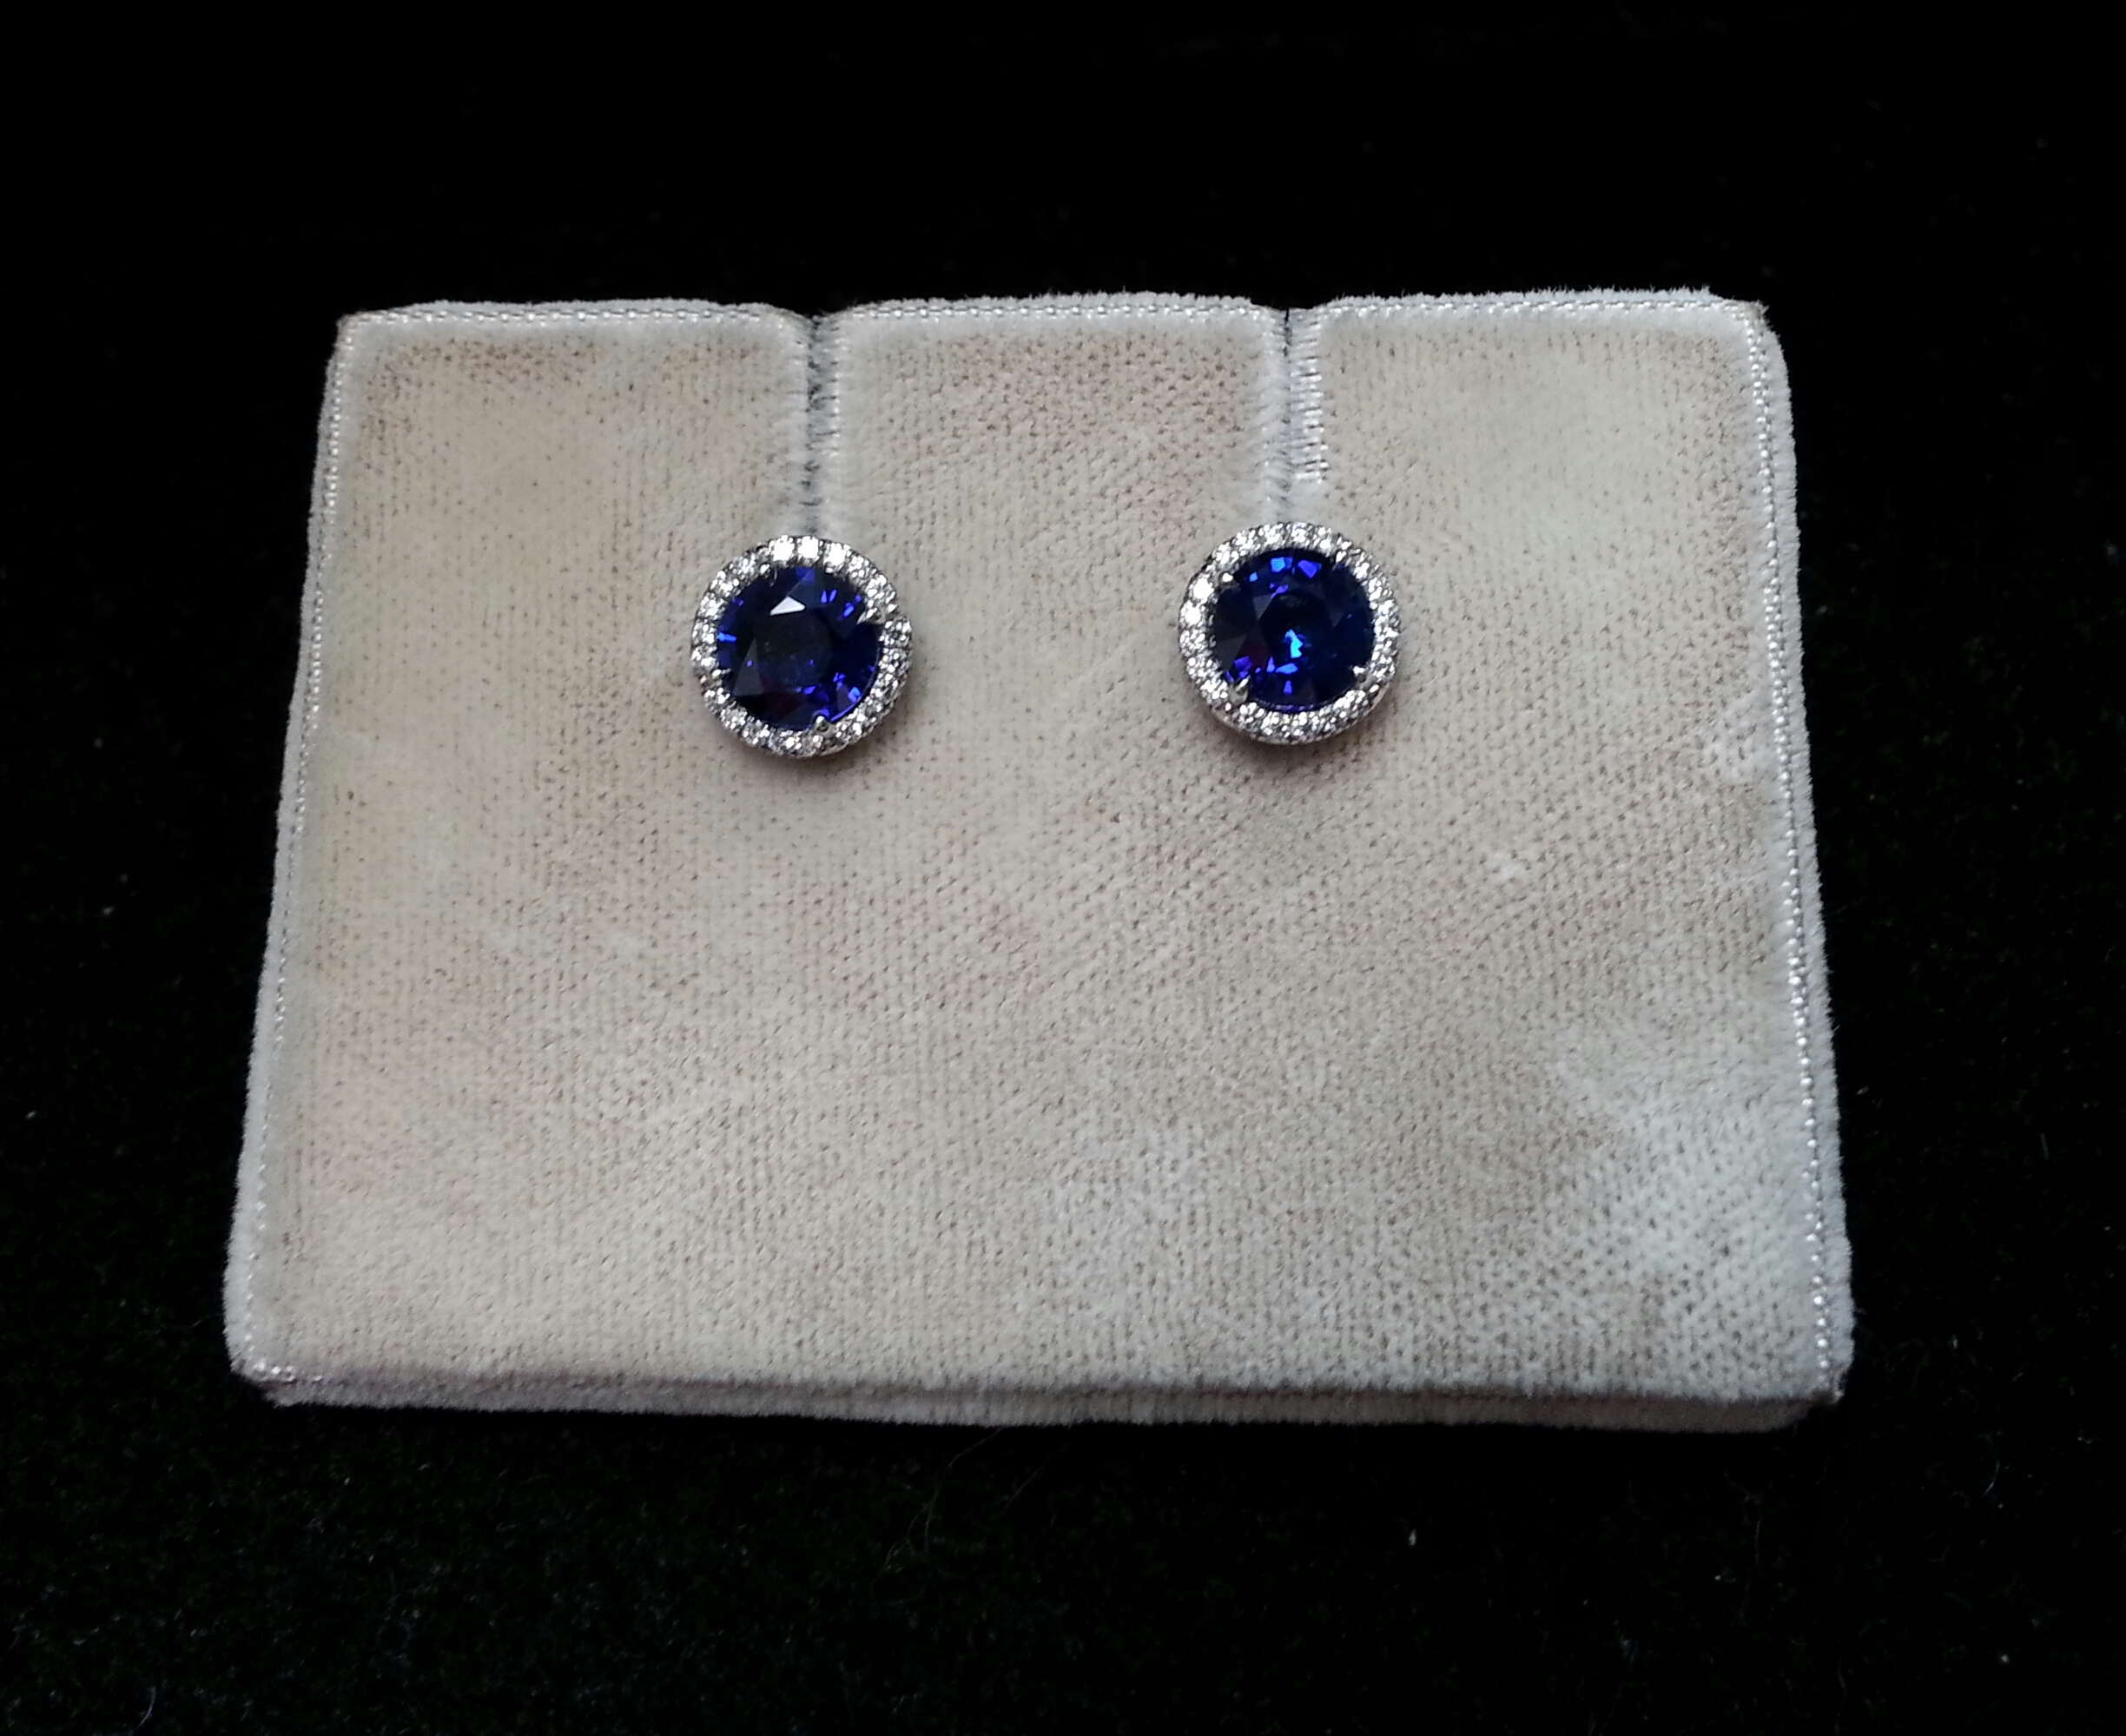 Blue Sapphire Earrings Set in Platinum with Small Diamond Halos Around Sapphires. Sapphires are 1.94ctw and Diamonds are 0.15ctw